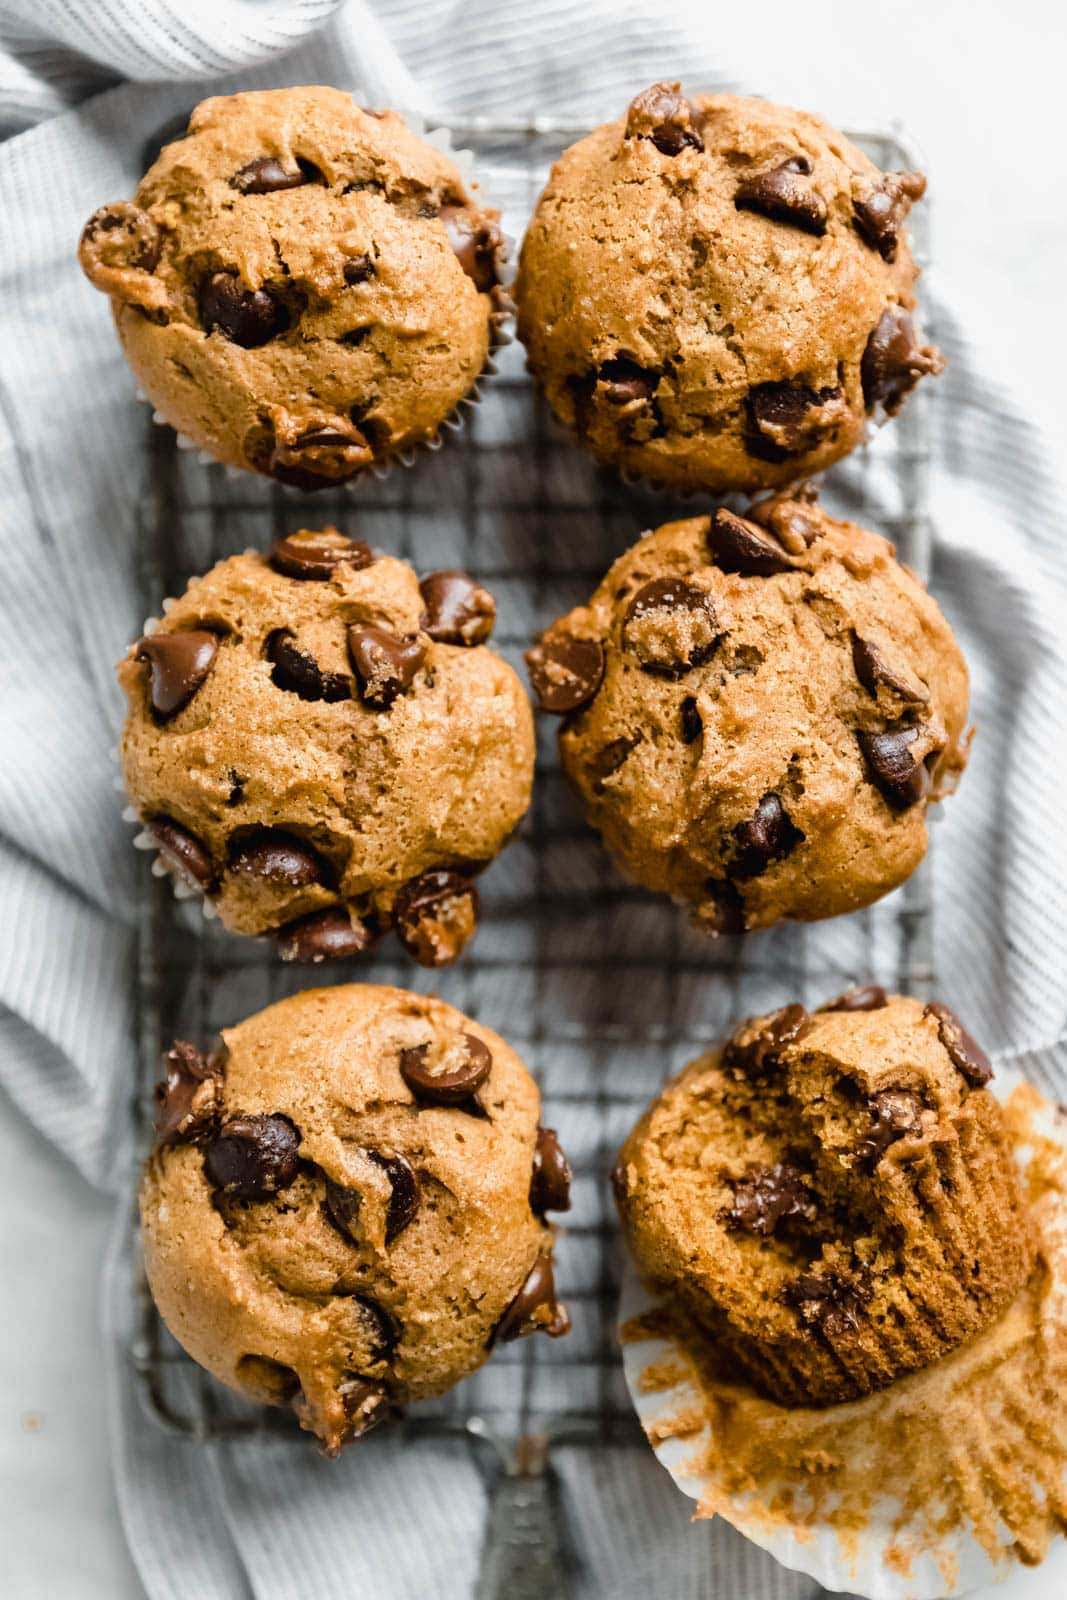 Absurdly moist Pumpkin Chocolate Chip Muffins made with cinnamon, nutmeg, ginger, and giant chocolate chips! Bonus: freeze them for an easy weekday treat!